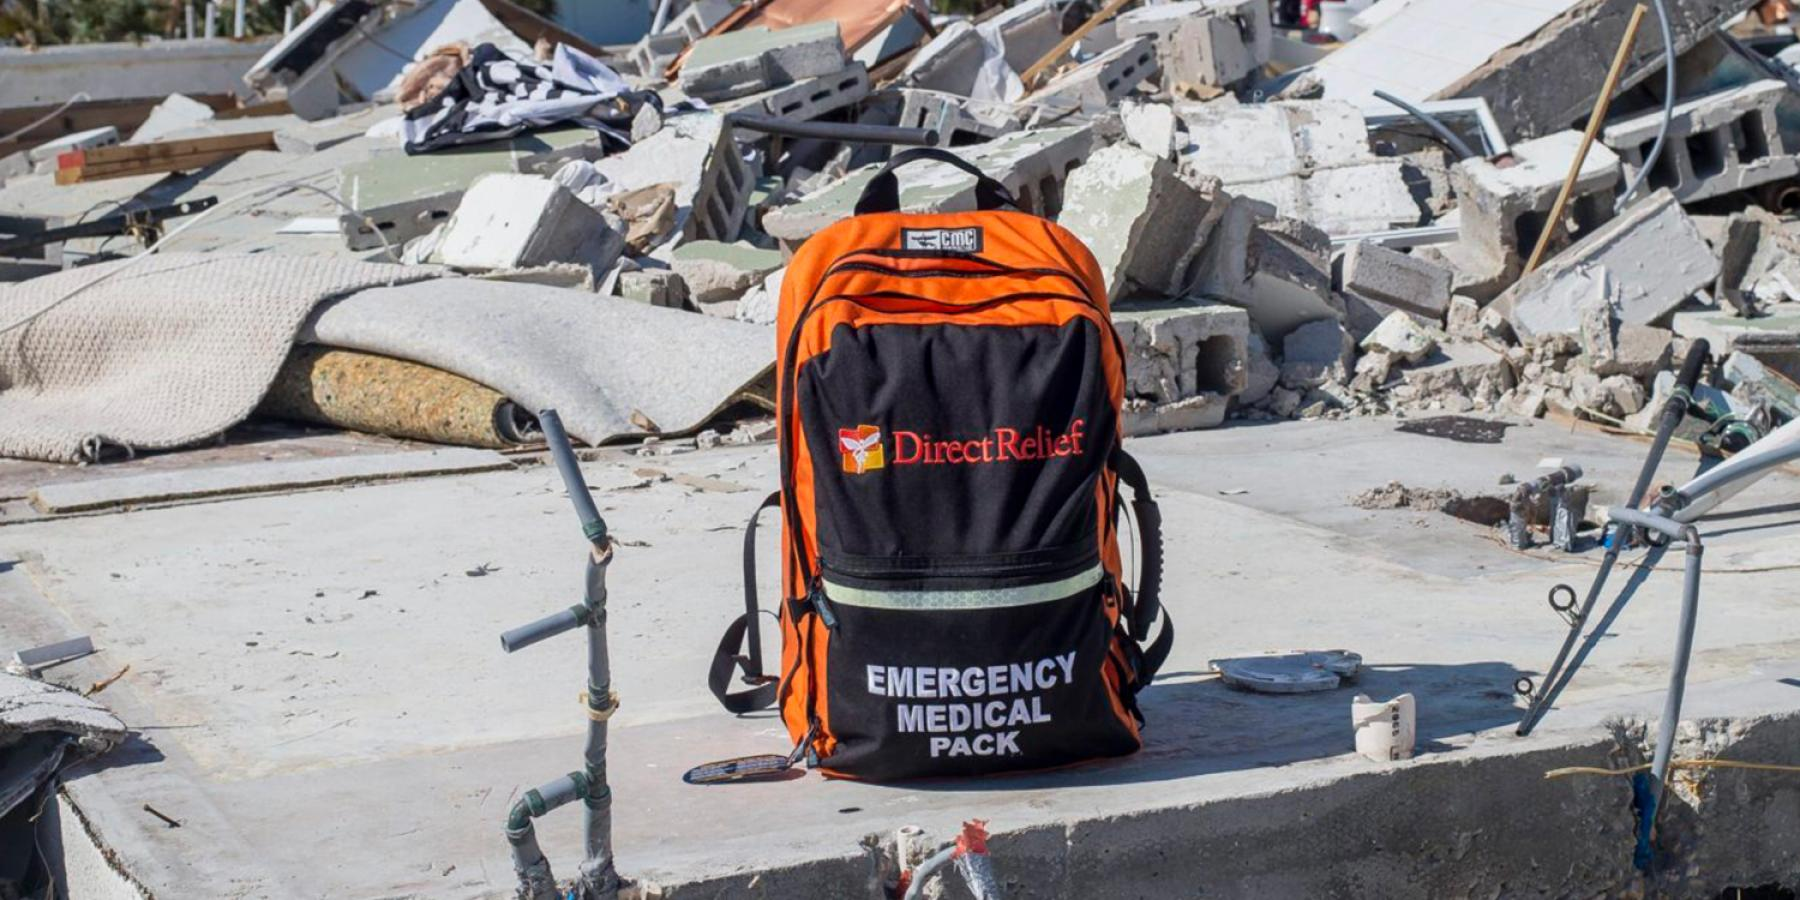 Direct Relief delivered emergency medical supplies to help the community of Mexico Beach devastated by Hurricane Michael in October 2018 © Zack Wittman for Direct Relief